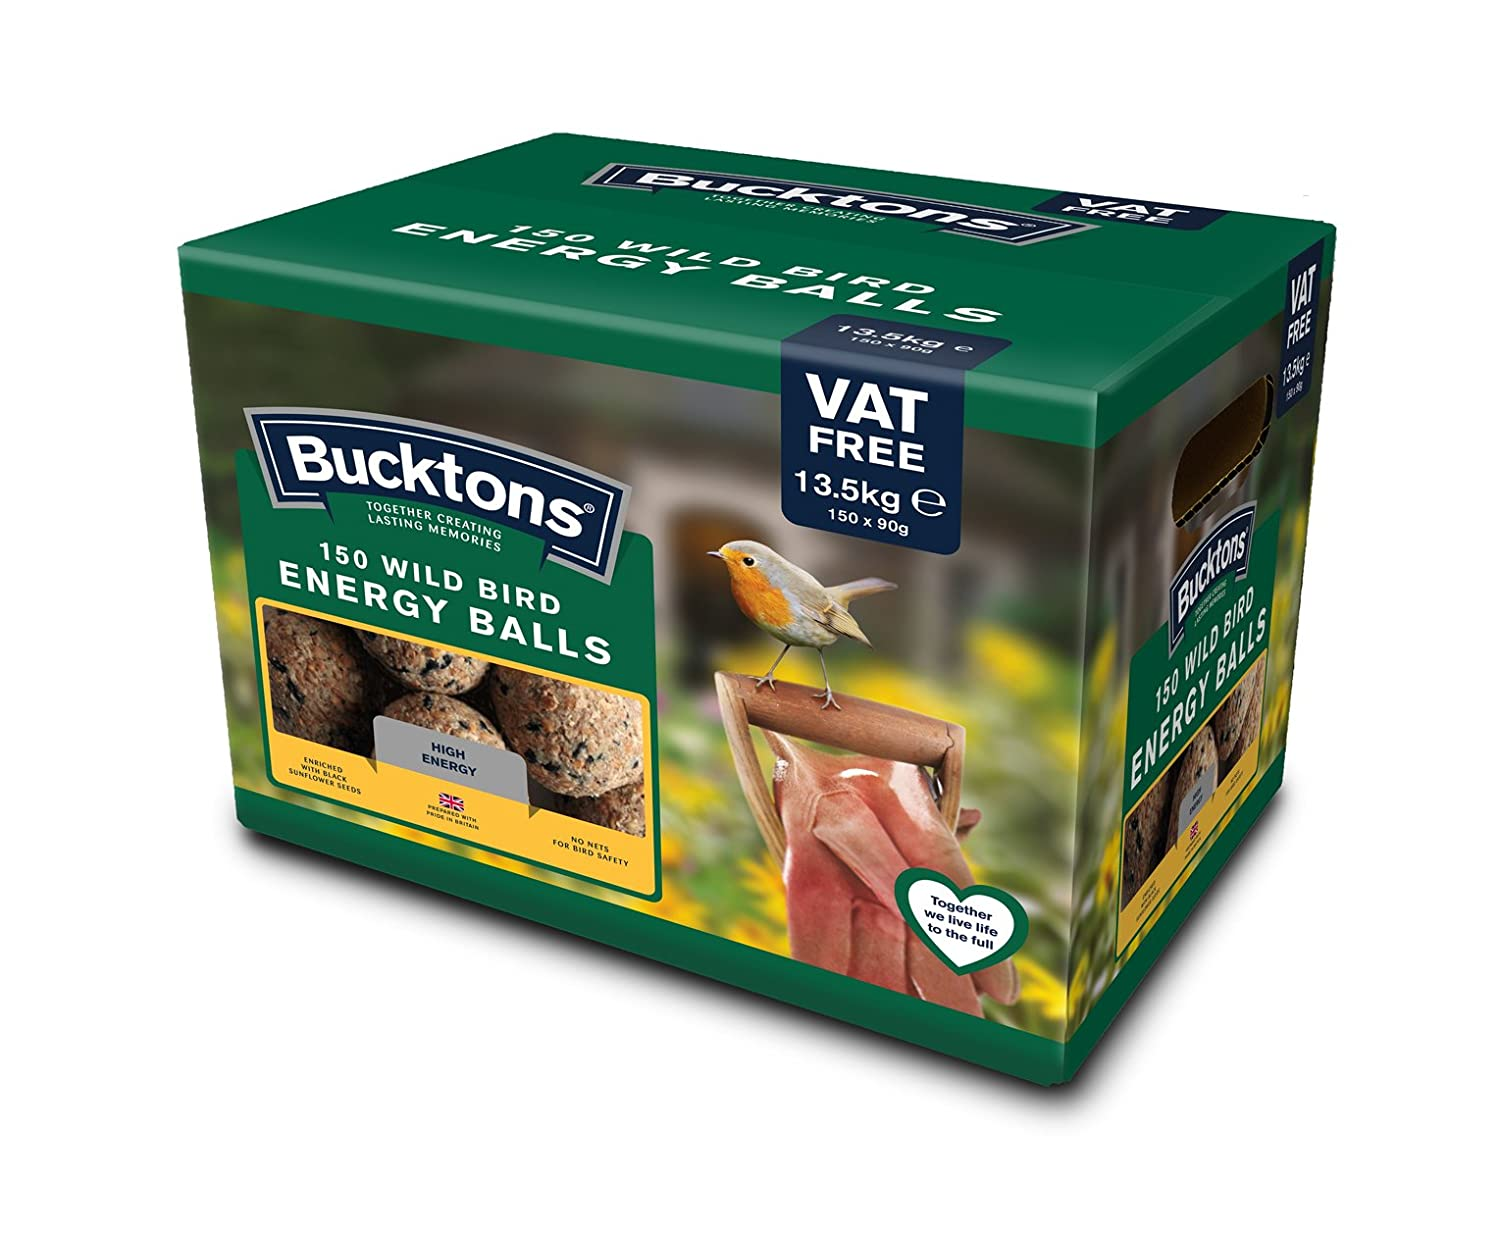 Bucktons Fat/Energy/Suet Balls, Pack of 150 Westland Horticulture Ltd 100195